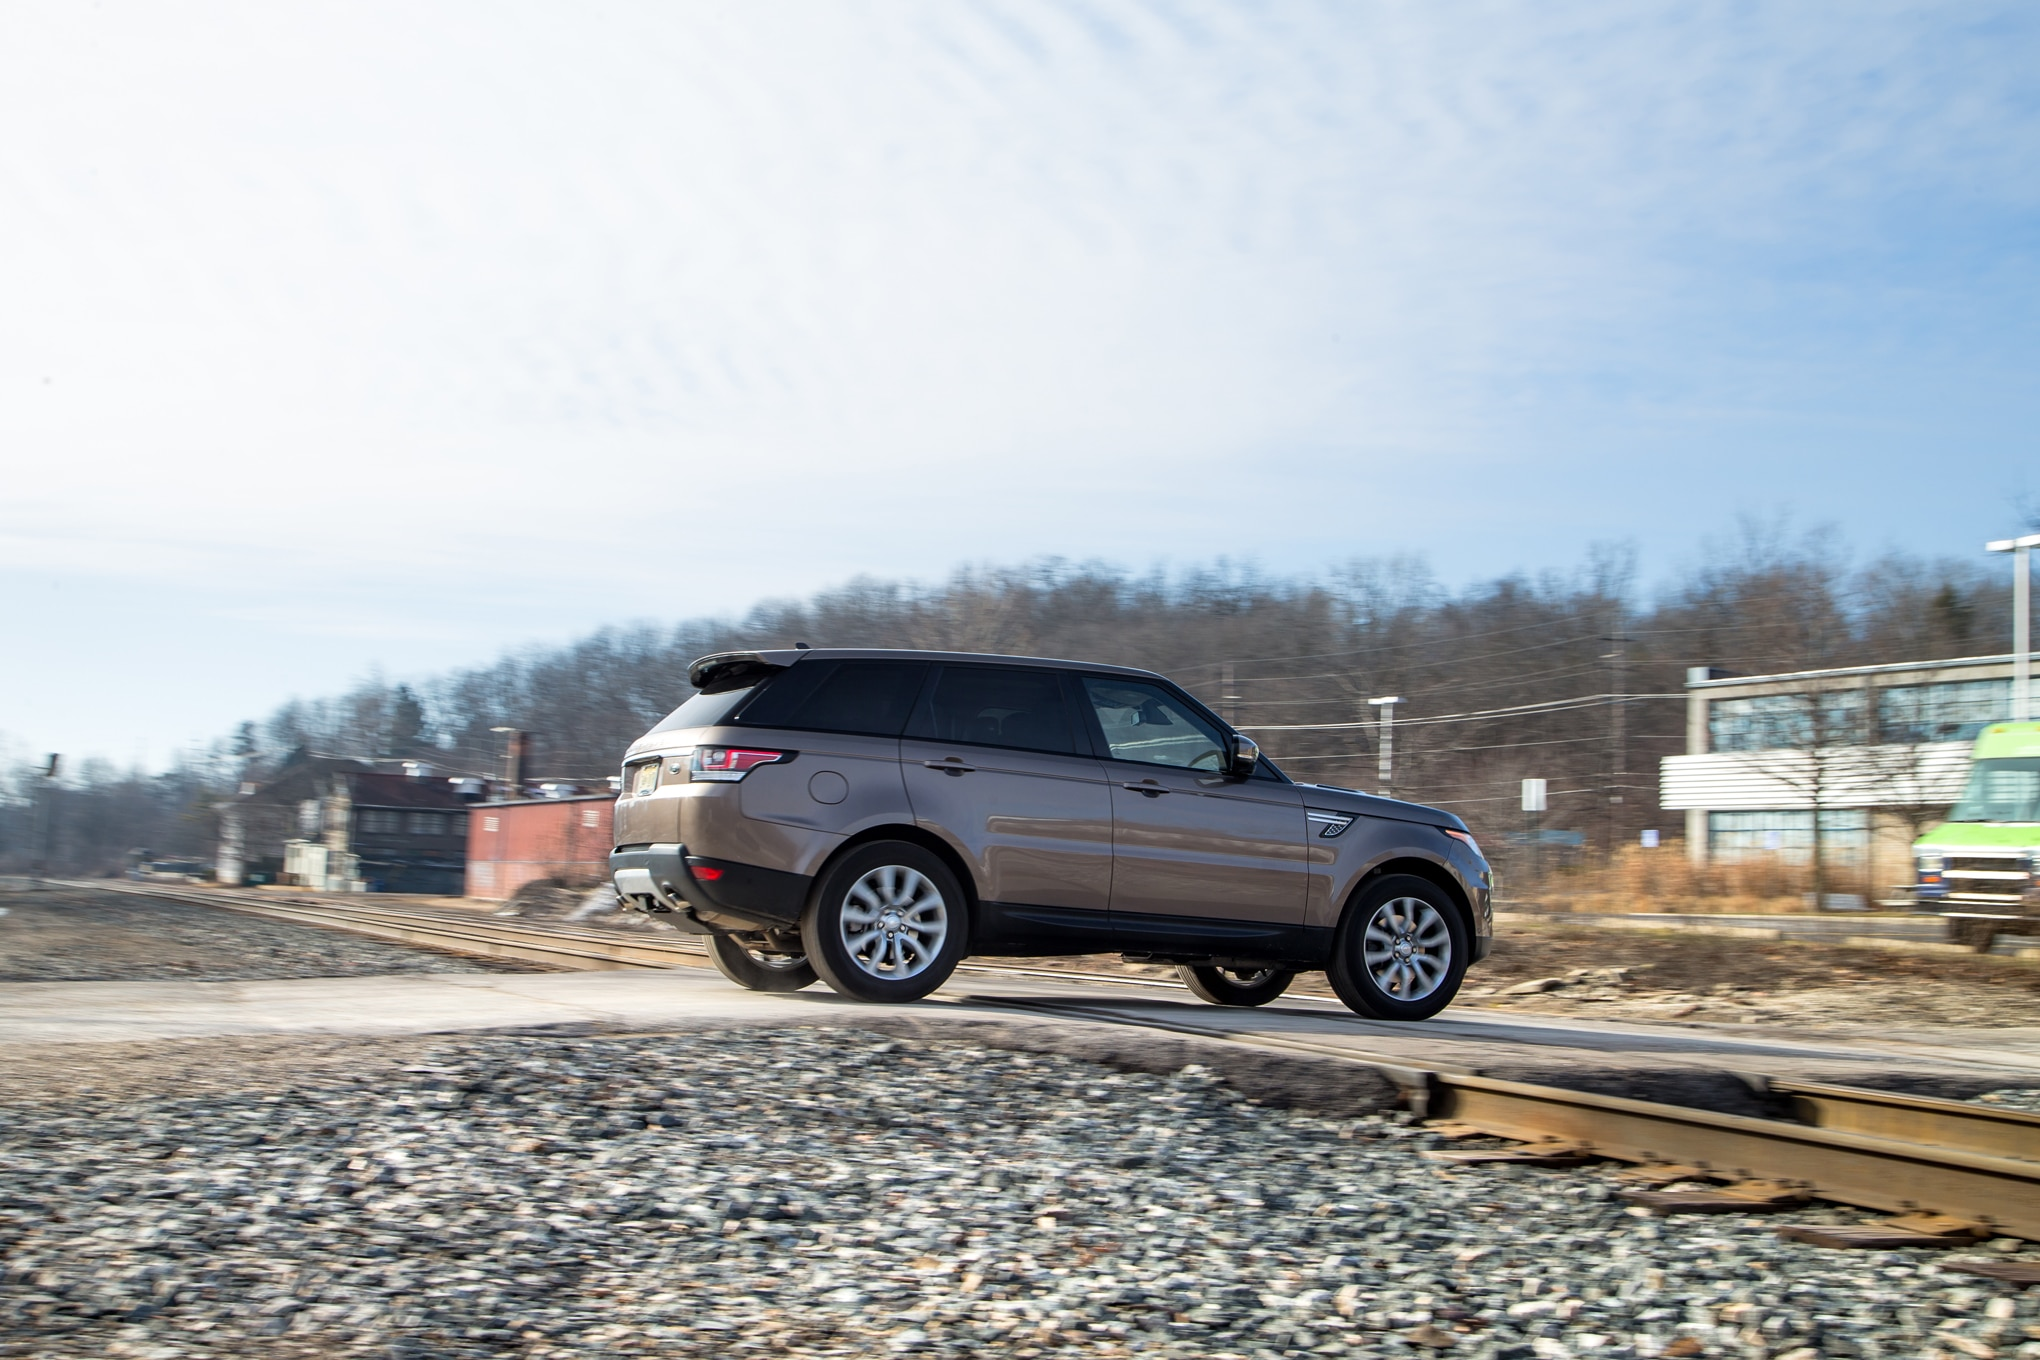 Electric or Diesel BMW X5 xDrive40e vs Range Rover Sport Td6